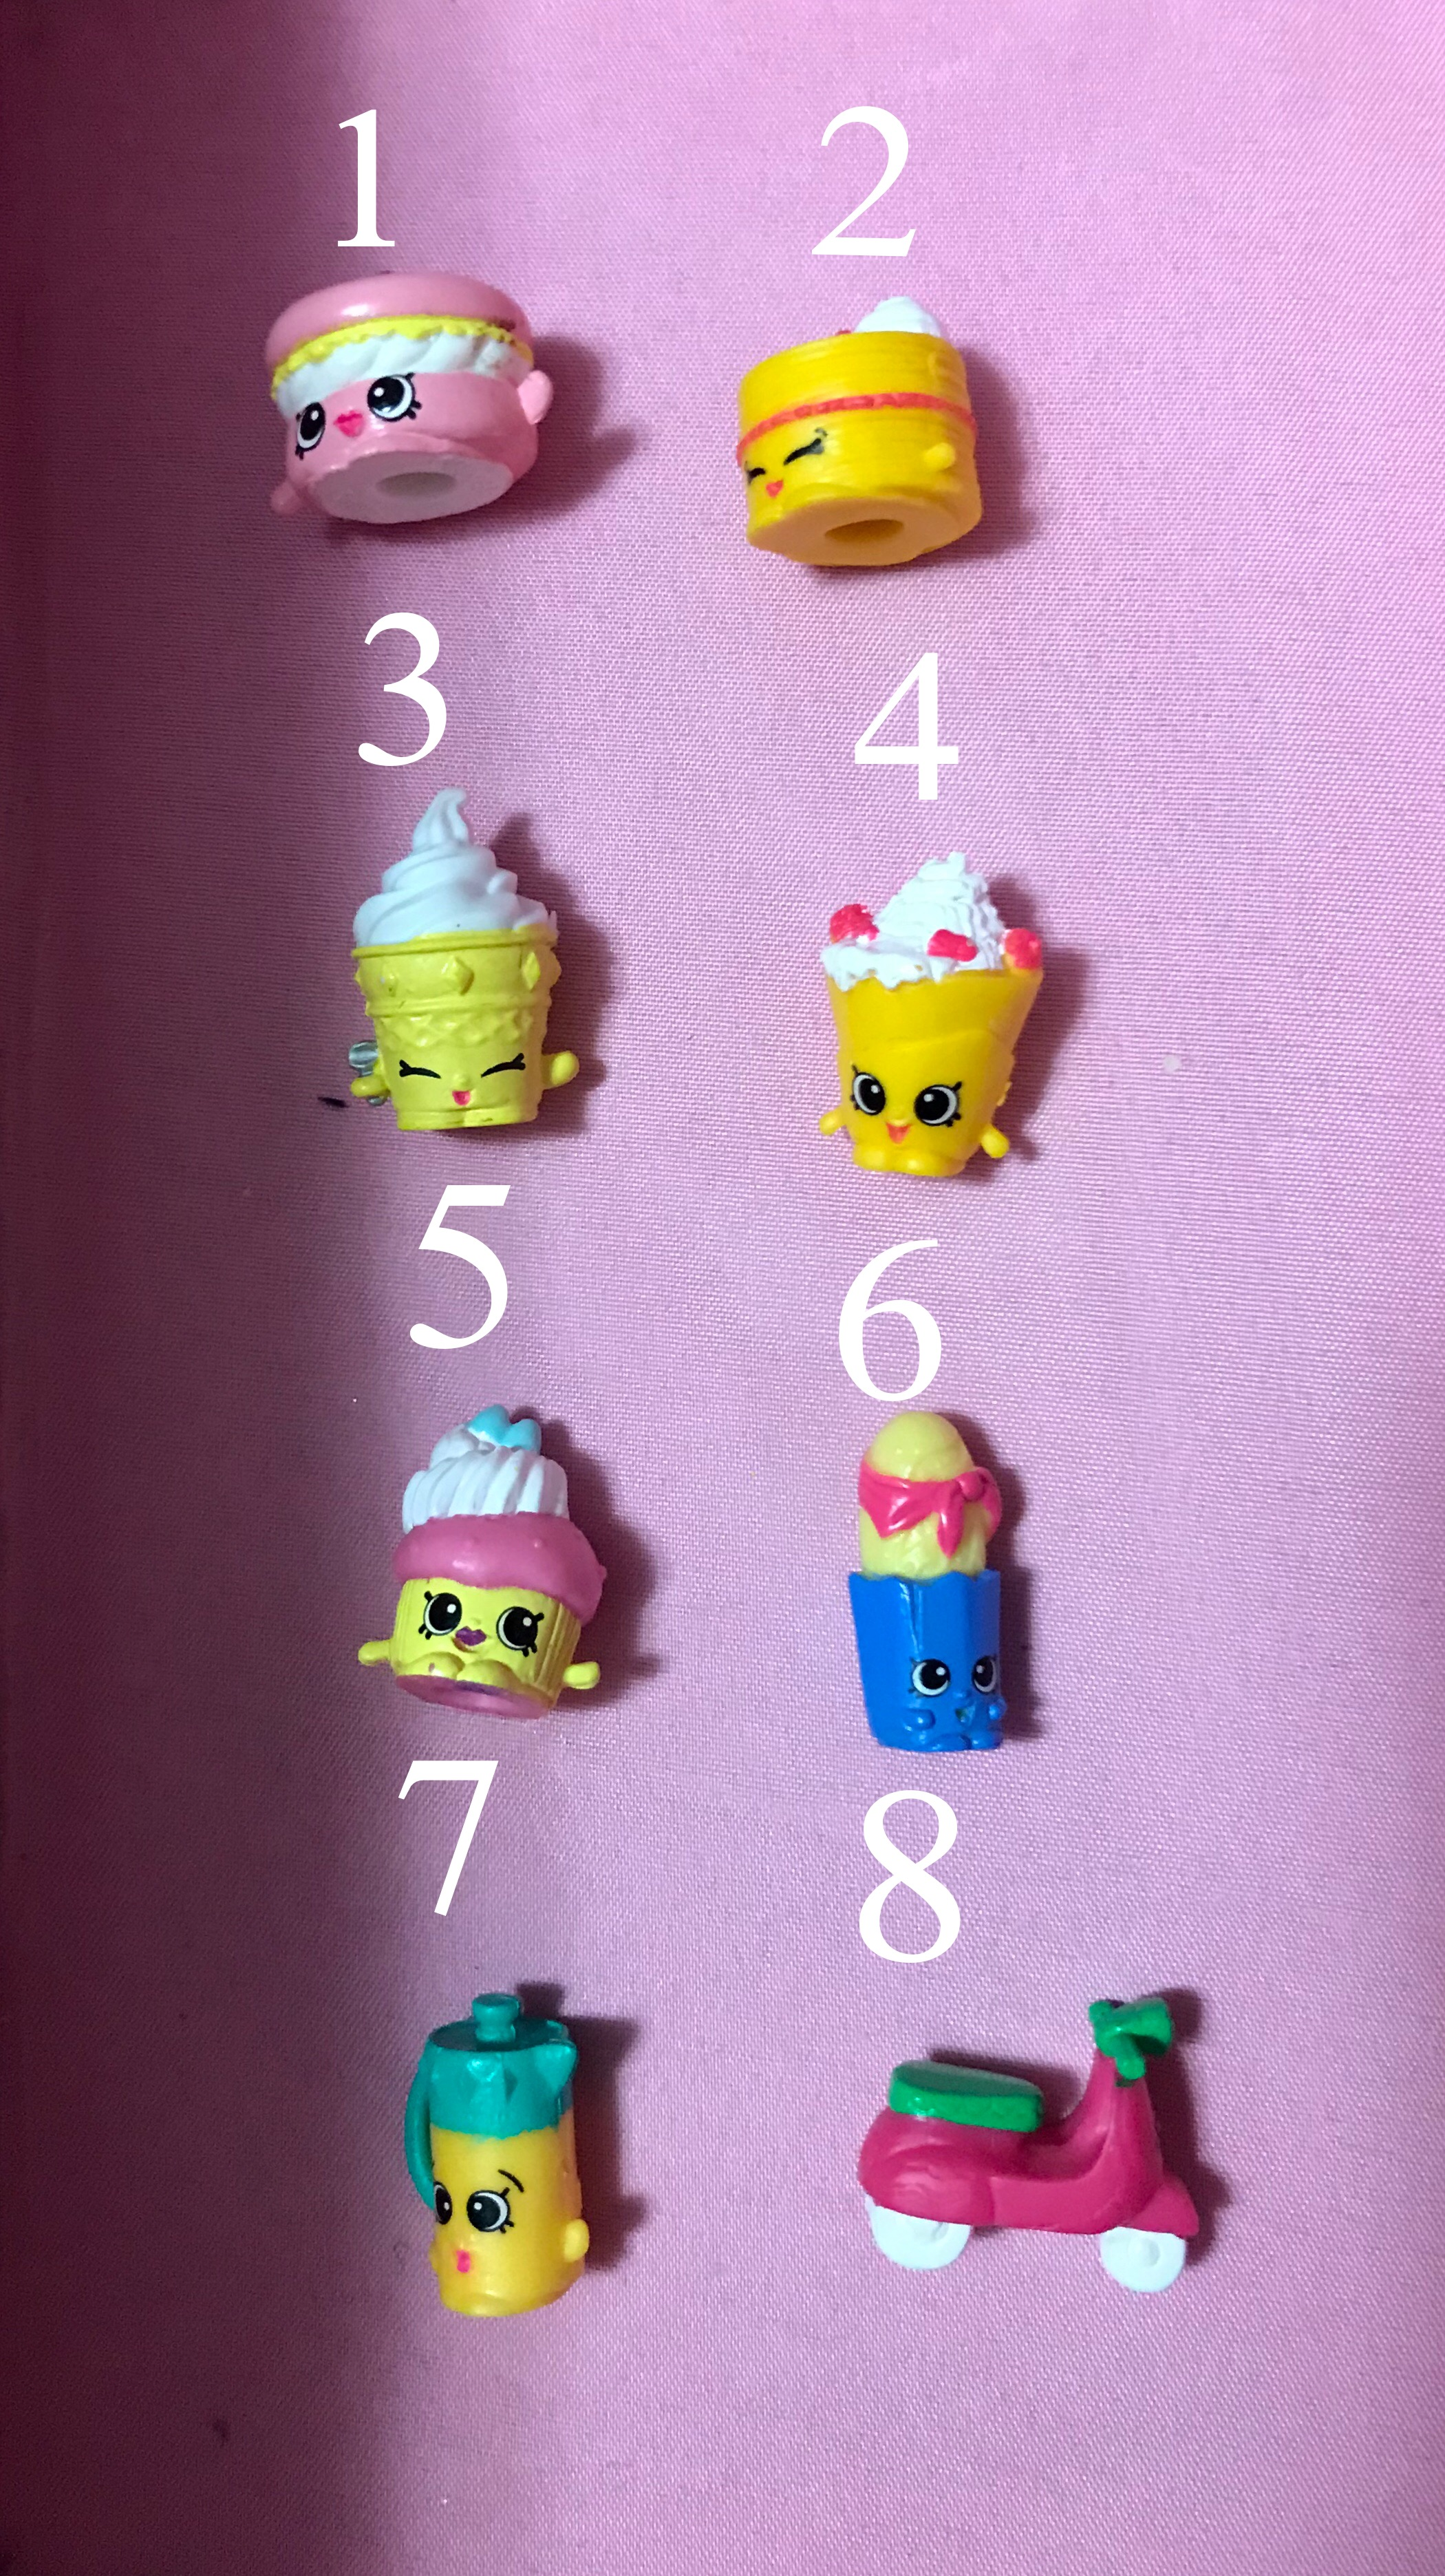 I Need Help Identifying These Shopkins Please And Thank You Name Season They Come From